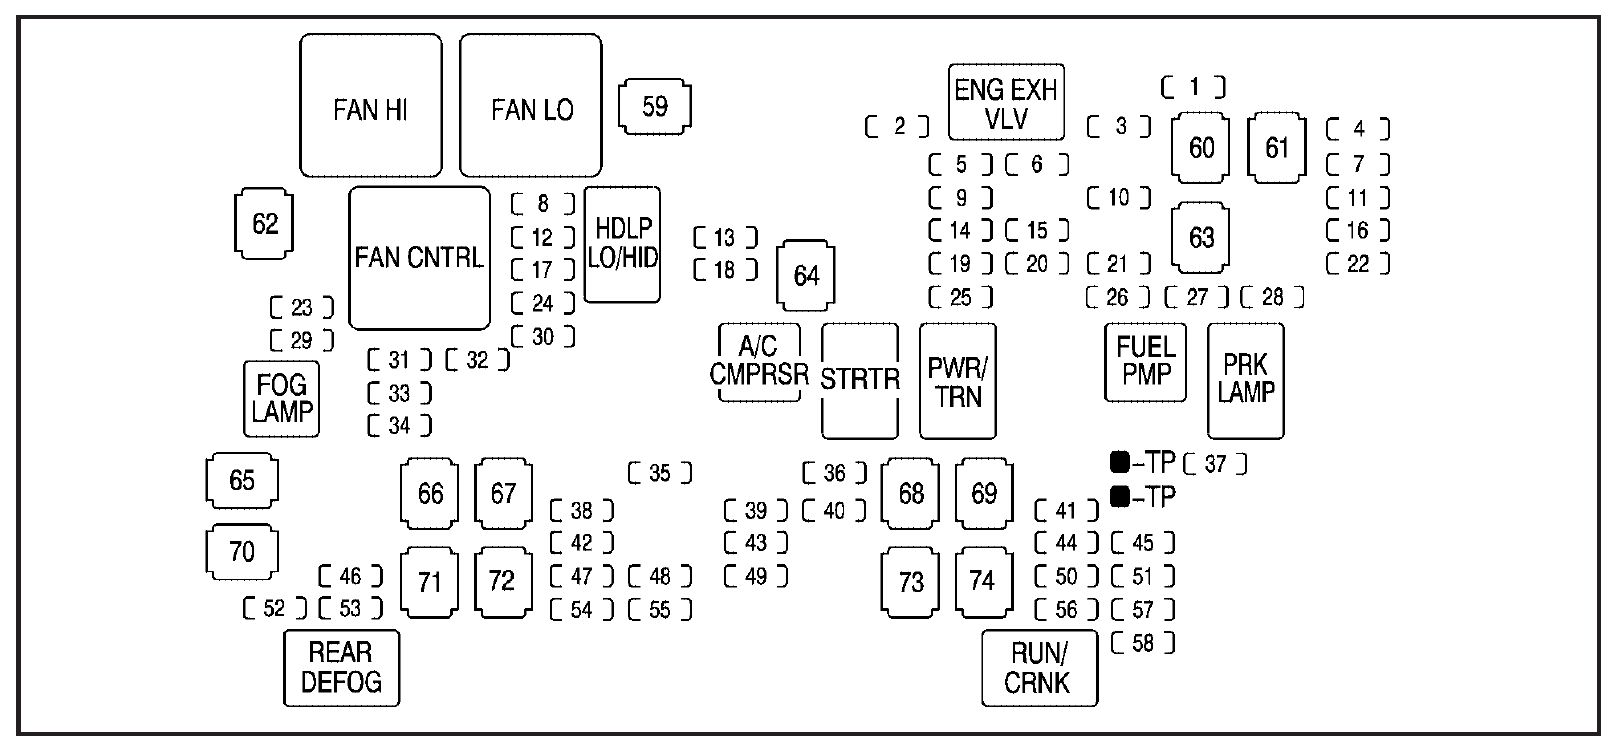 2007 Silverado Fuse Box : 23 Wiring Diagram Images